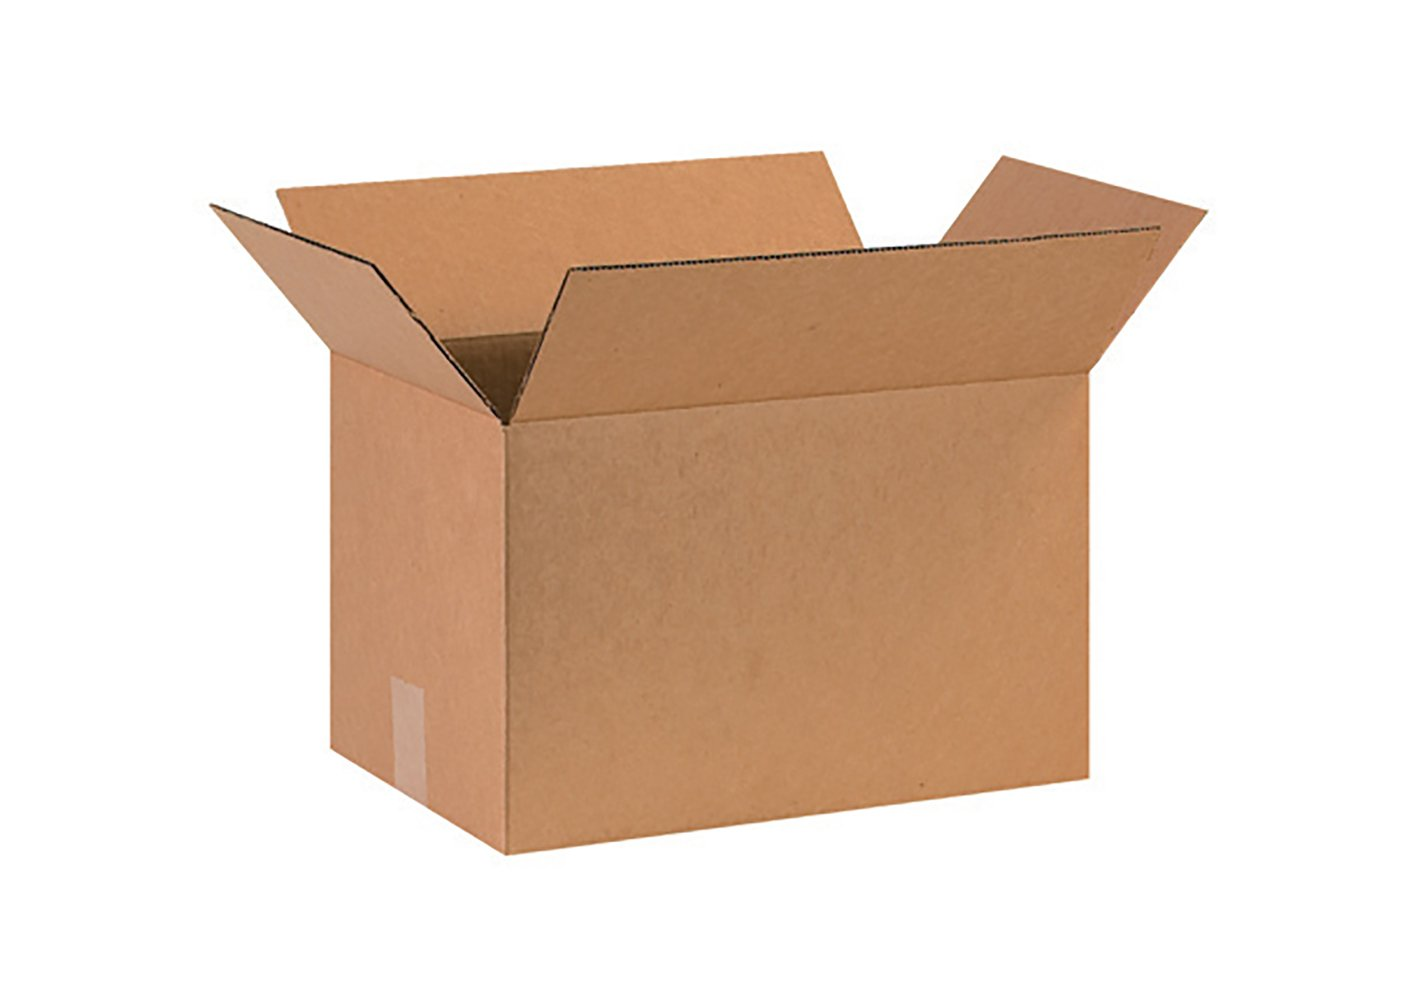 16 Length 10 Height 10 Width RetailSource B161010CB10 Corrugated Box Pack of 10 Brown